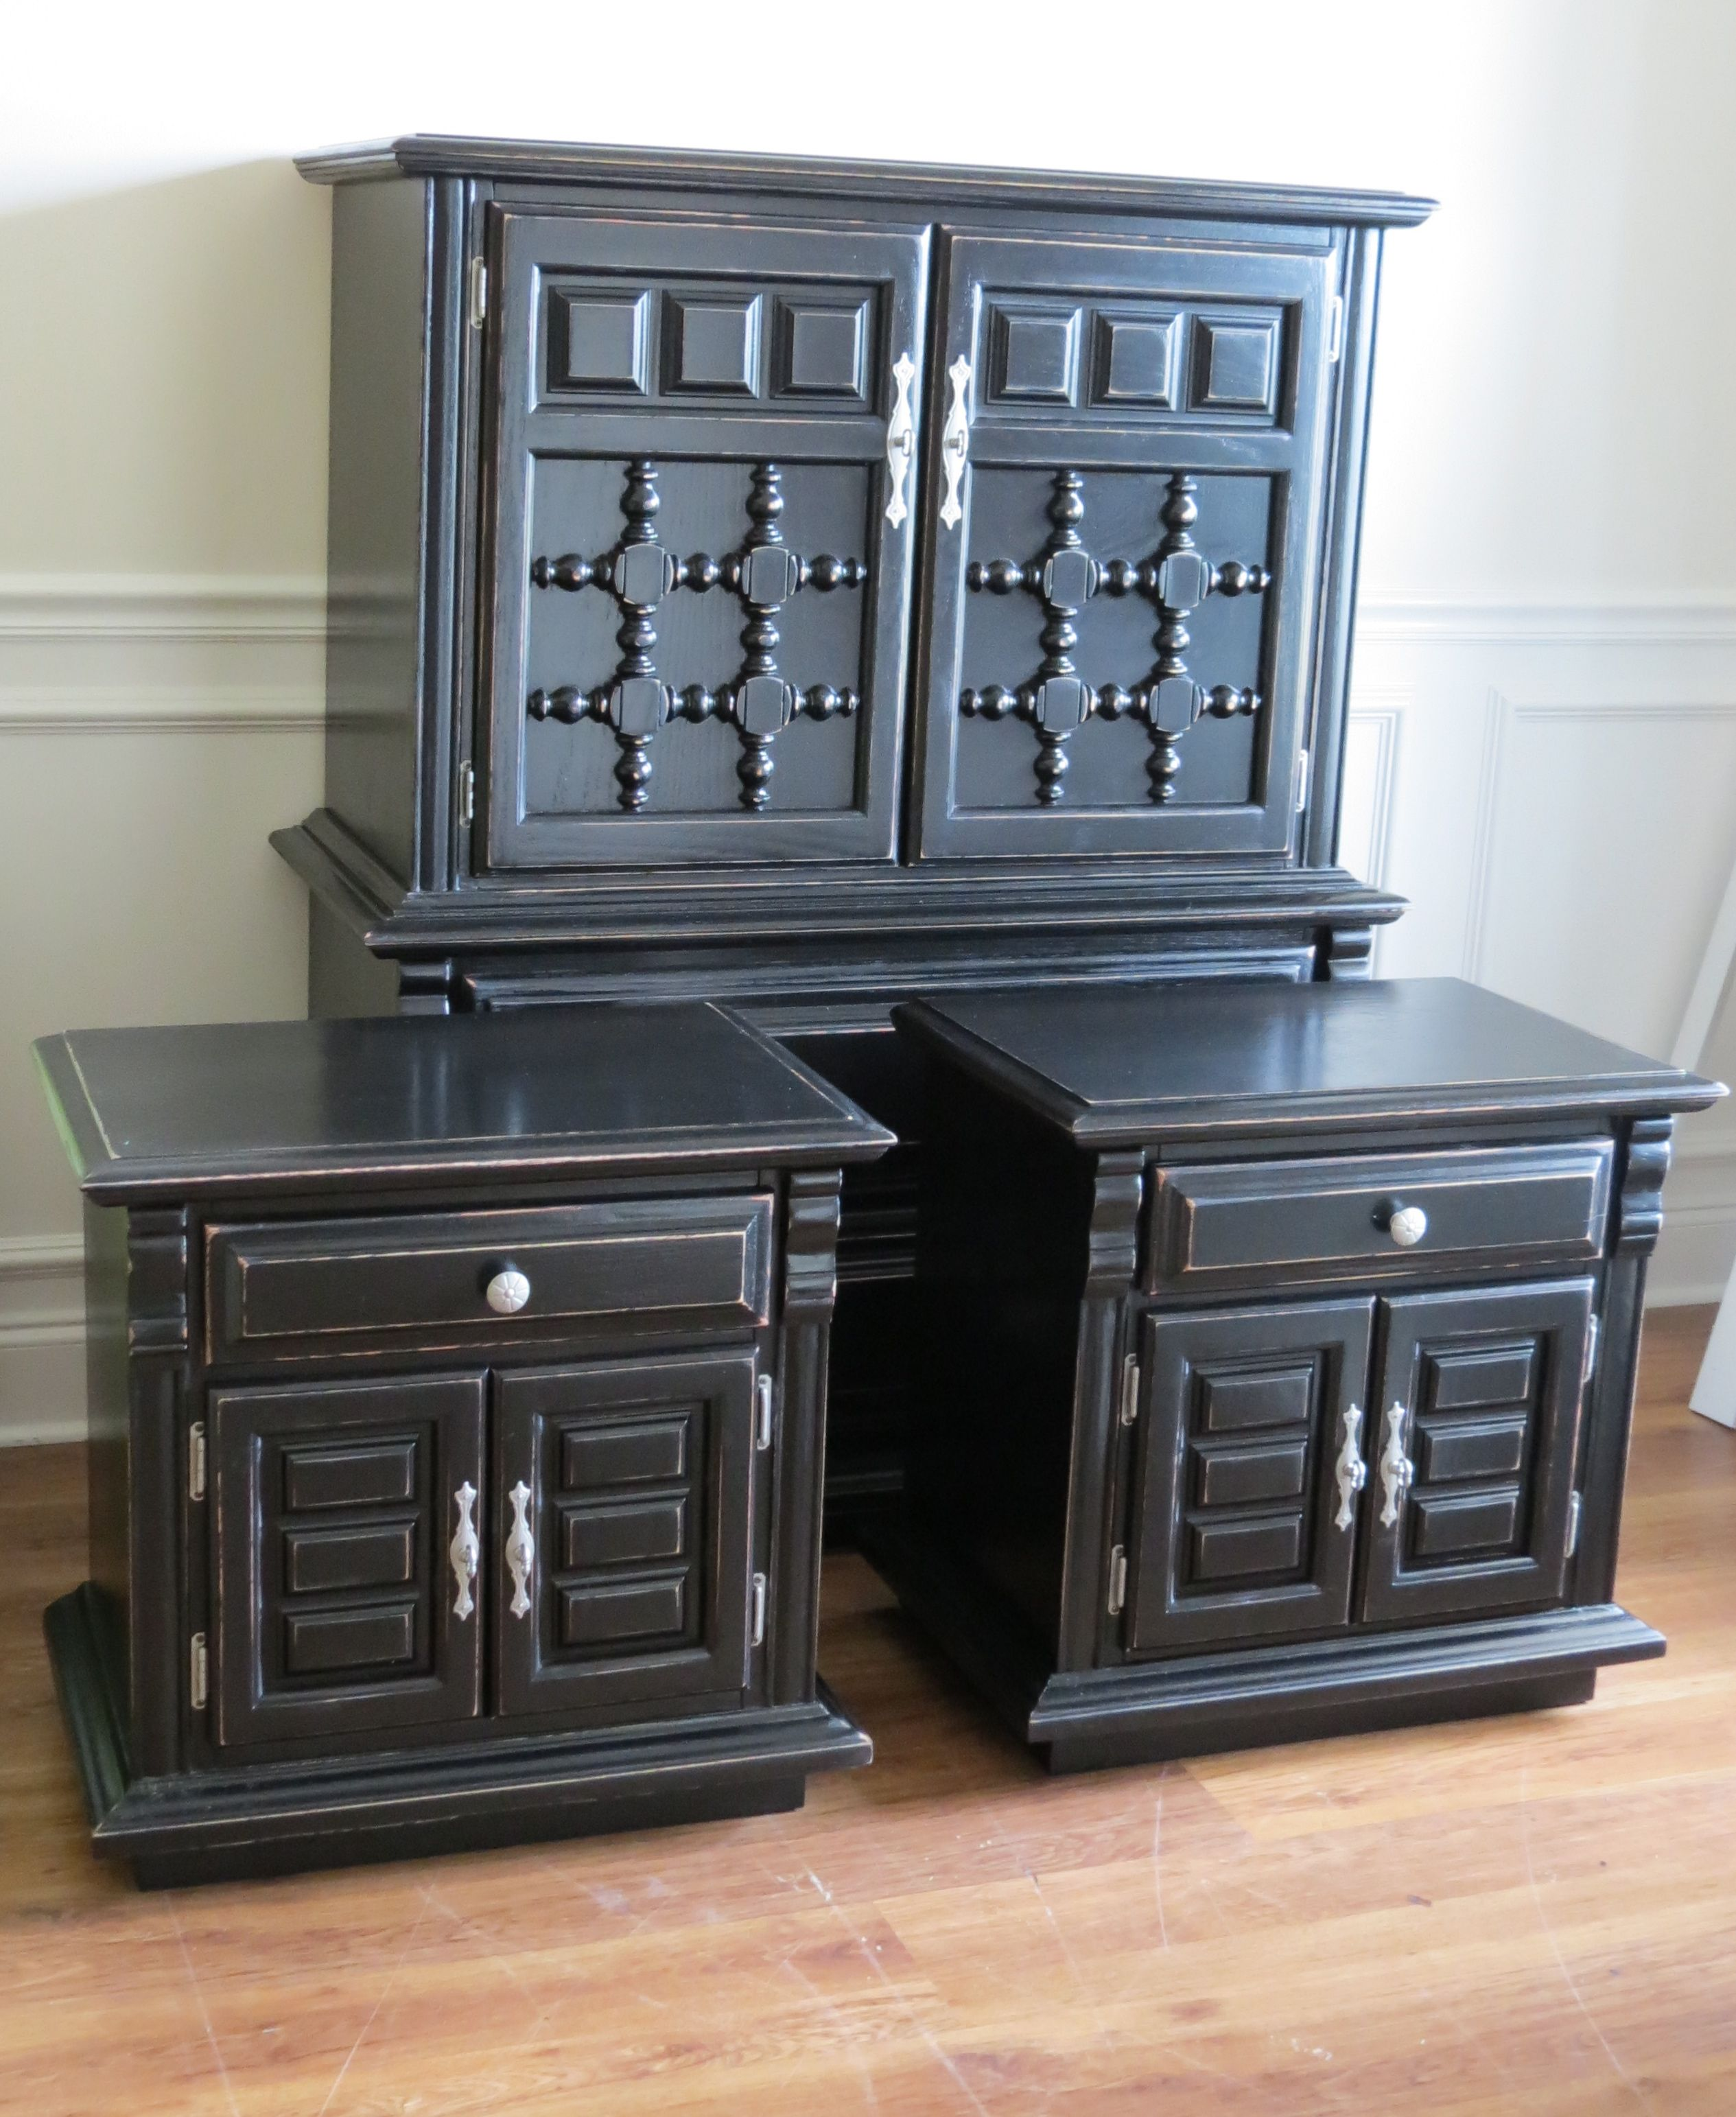 Painting Bedroom Furniture Black black painted furniture, this is how you make those clunky, old